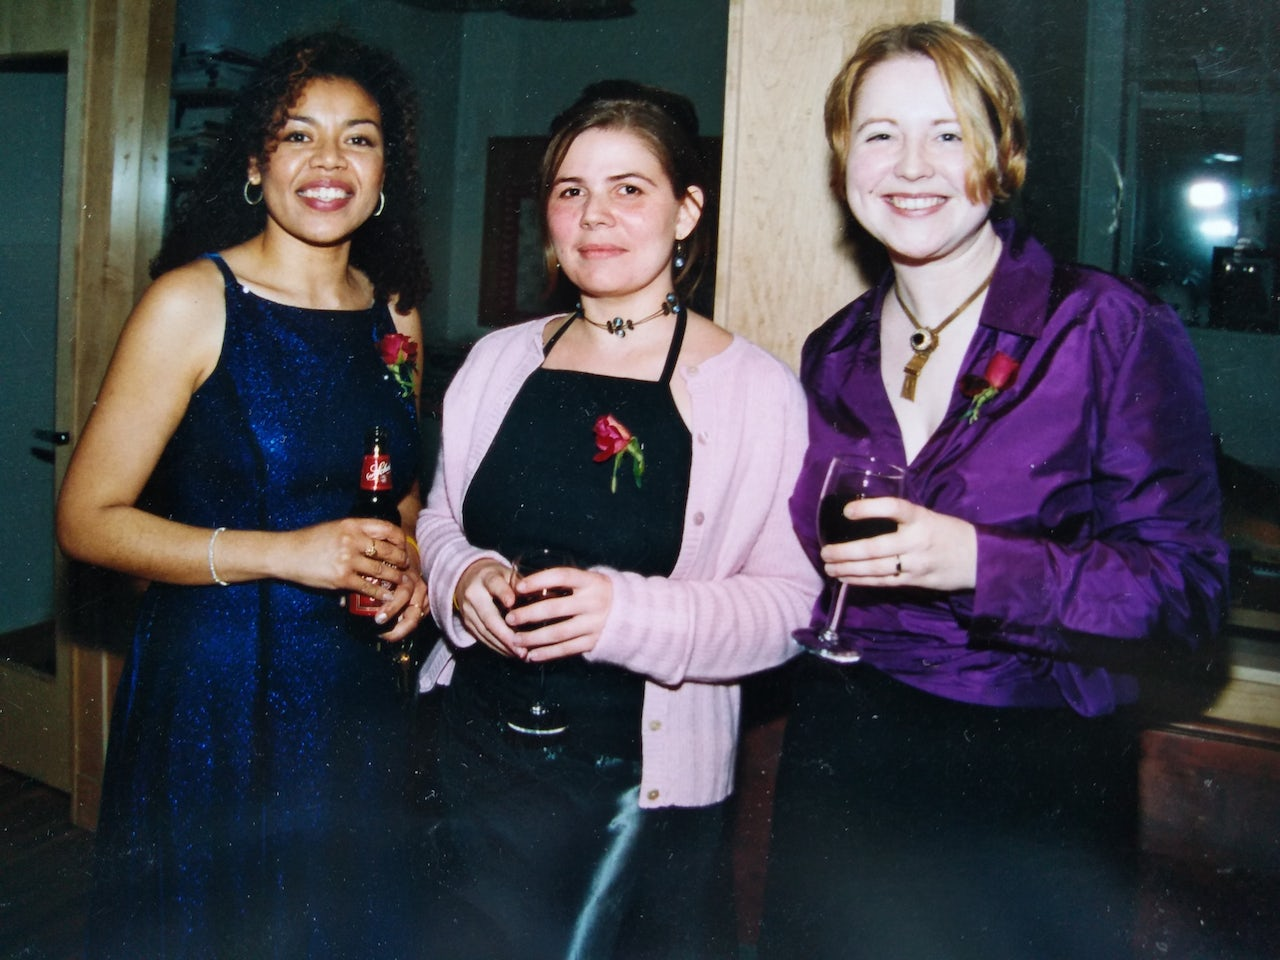 The author (middle) at her Y2K gala.